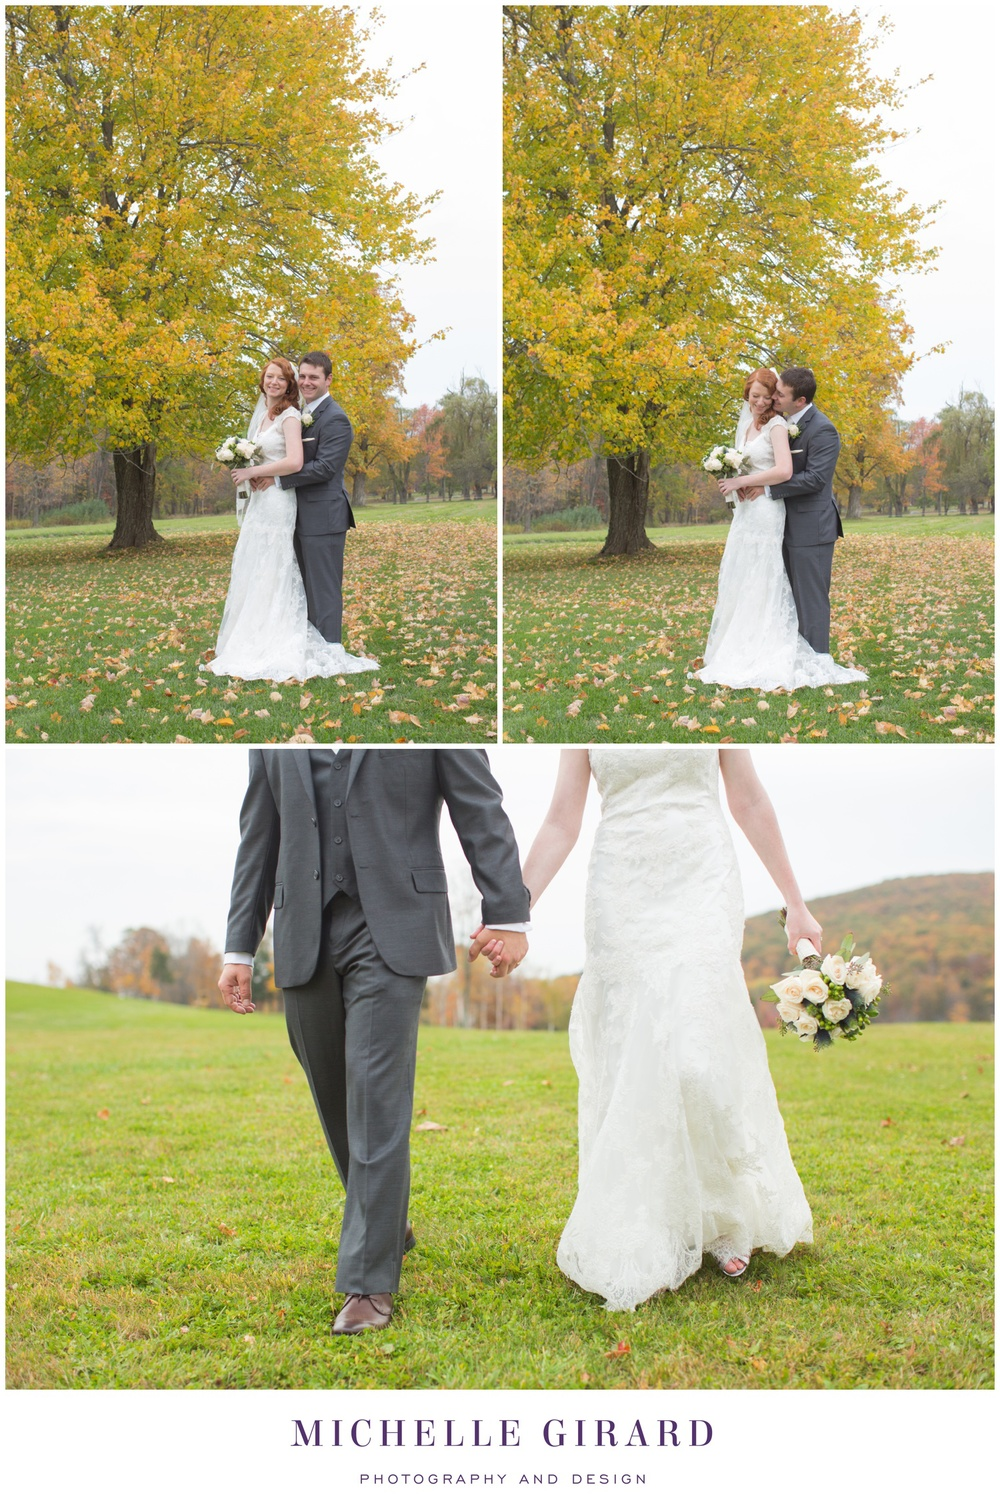 CandleLightFarms_FallRusticWedding_MichelleGirardPhotography09.jpg